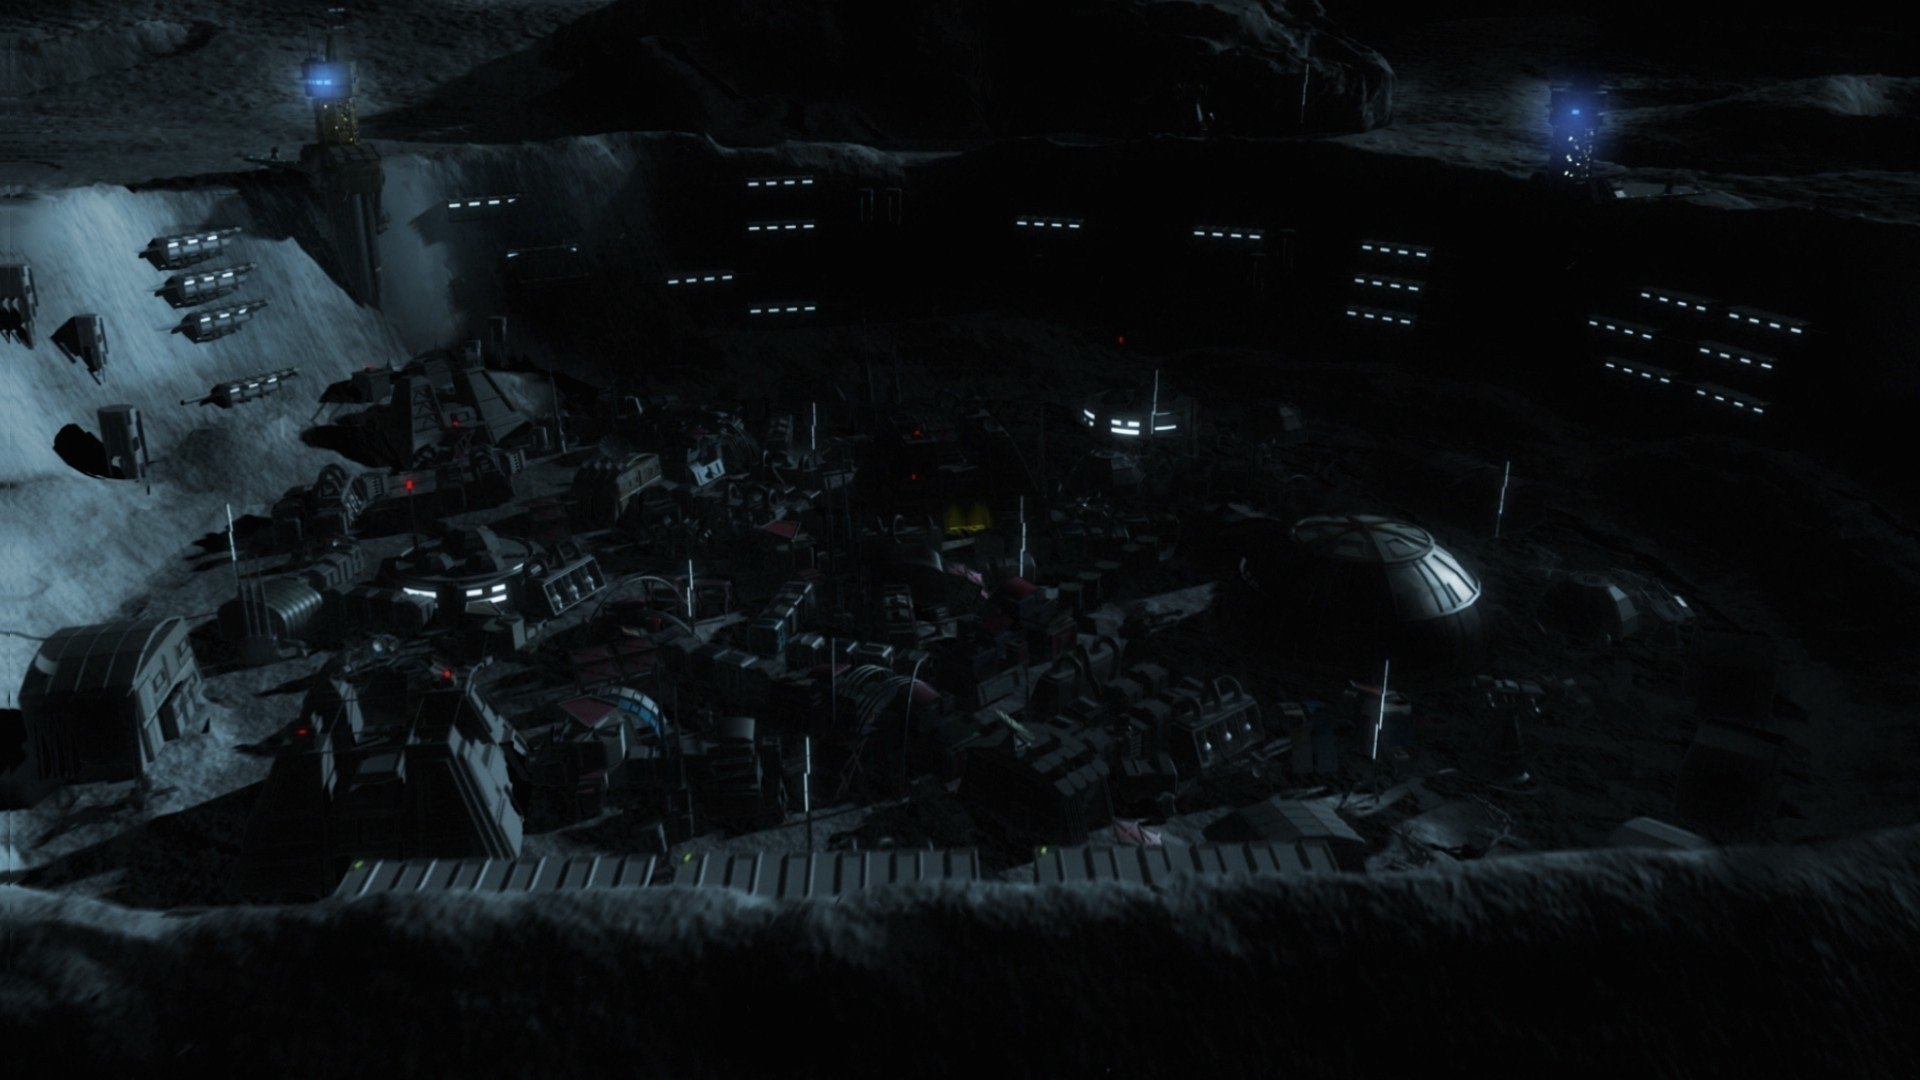 Still of the moon base in Shockwave Darkside (2014)